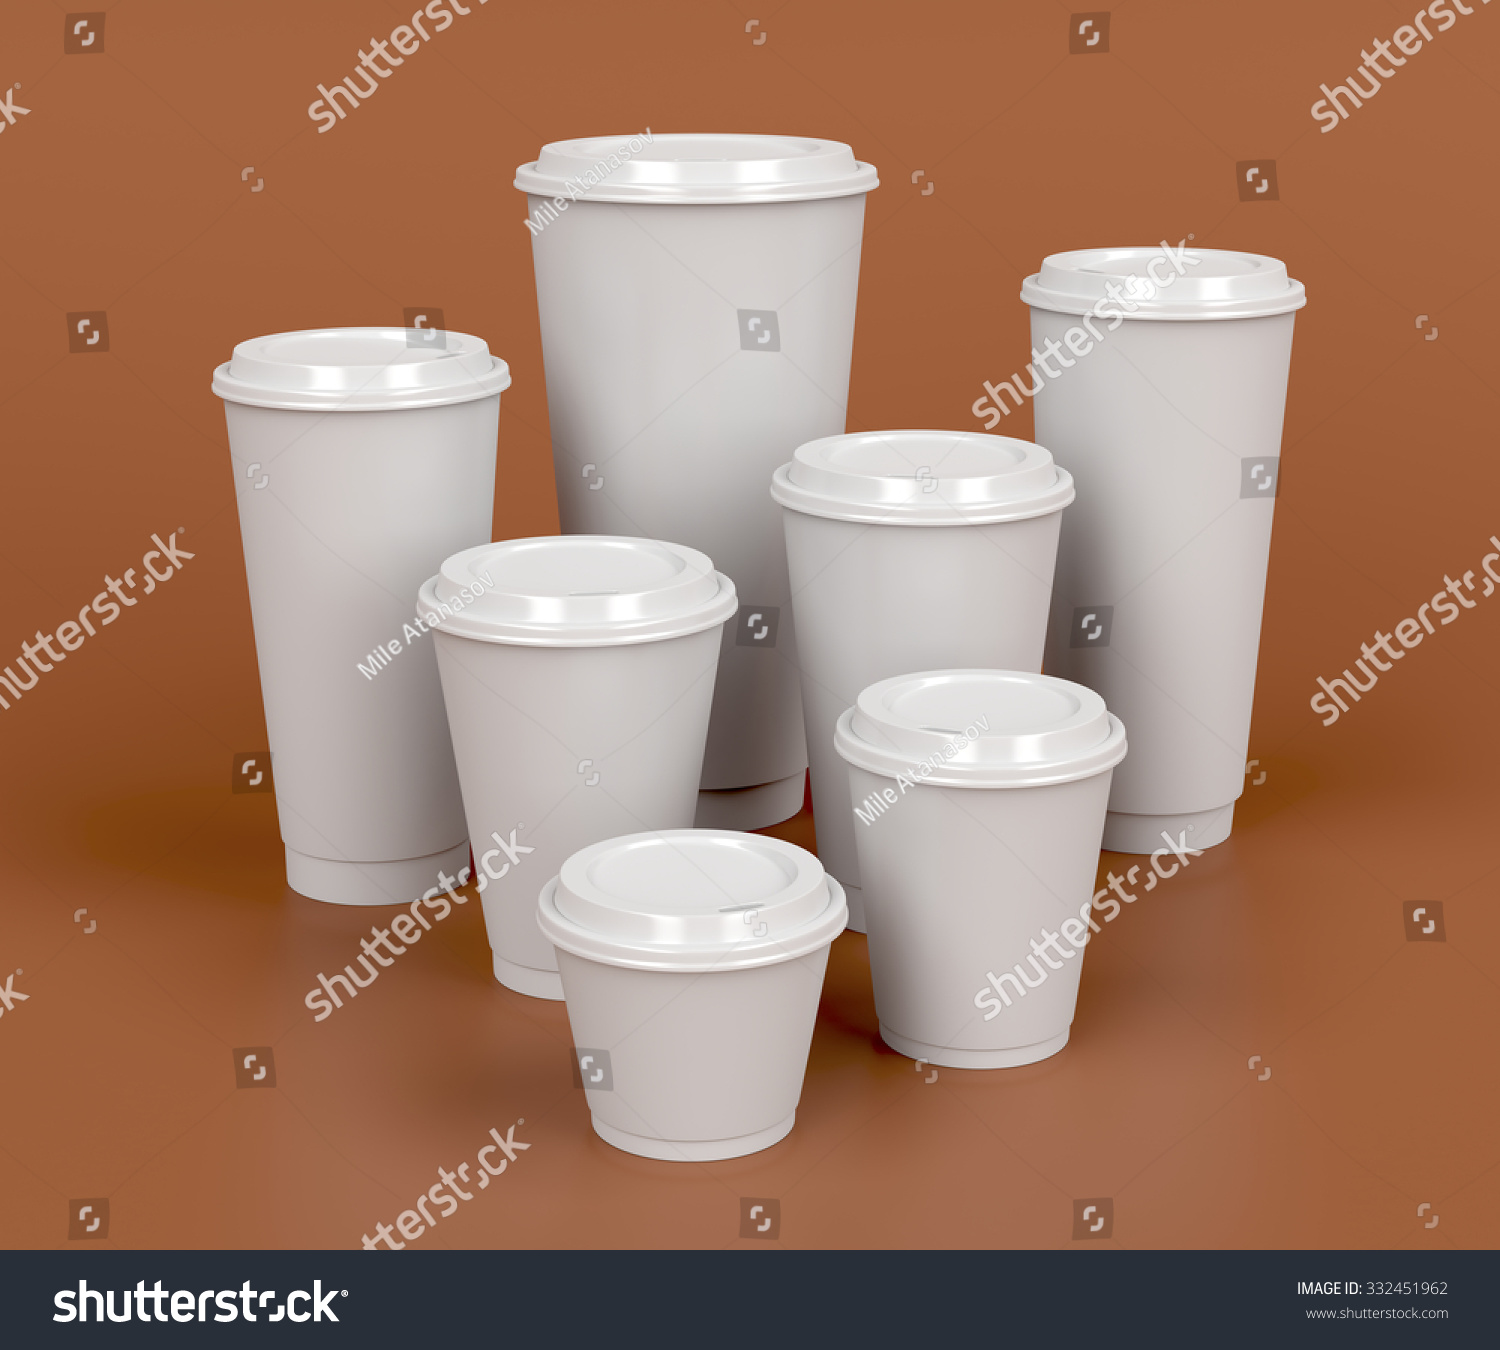 Different cup sizes pictures